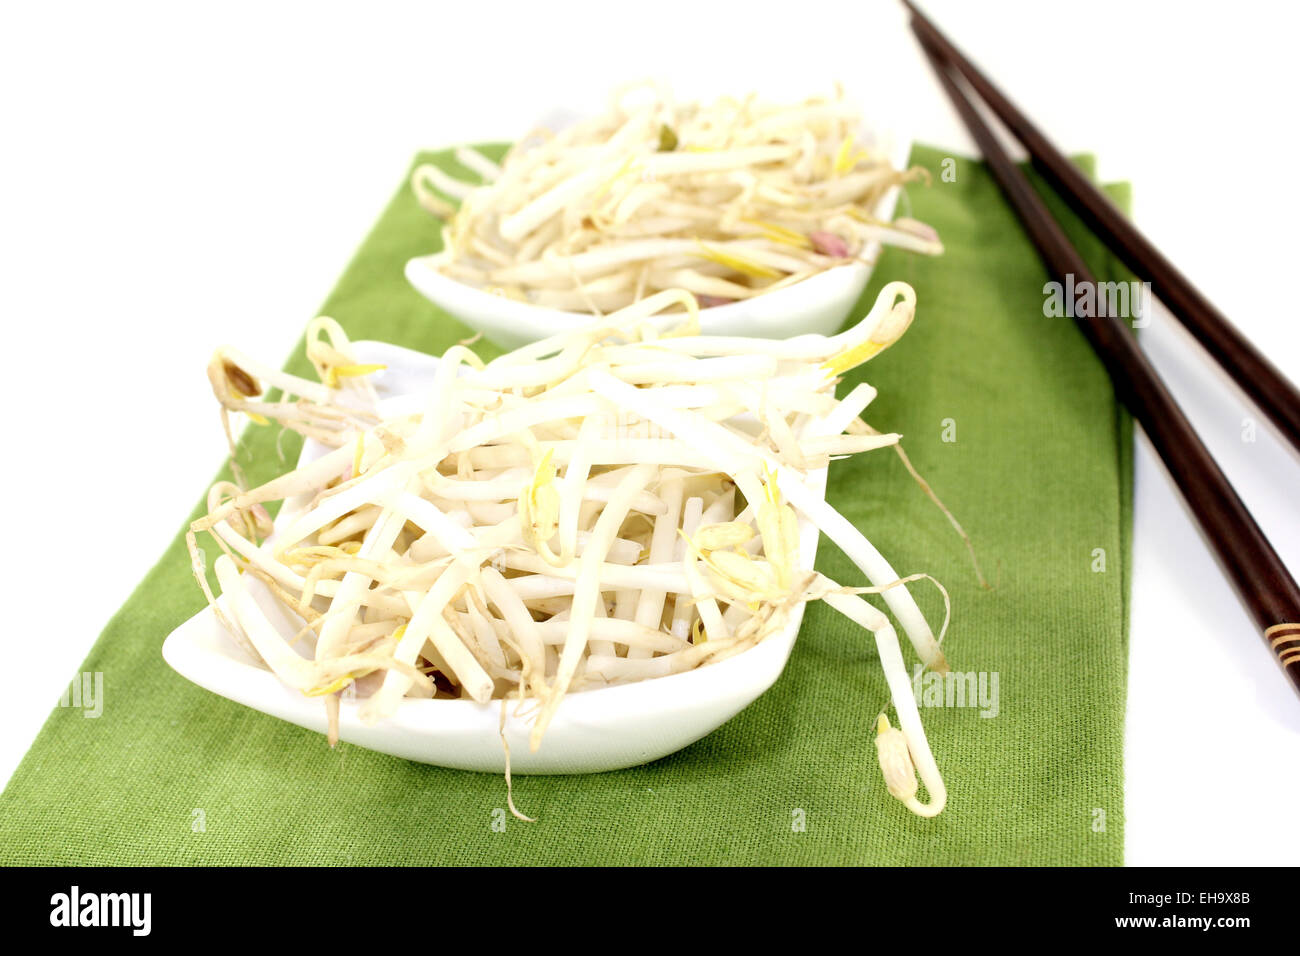 mung bean sprouts with chopsticks on a light background - Stock Image